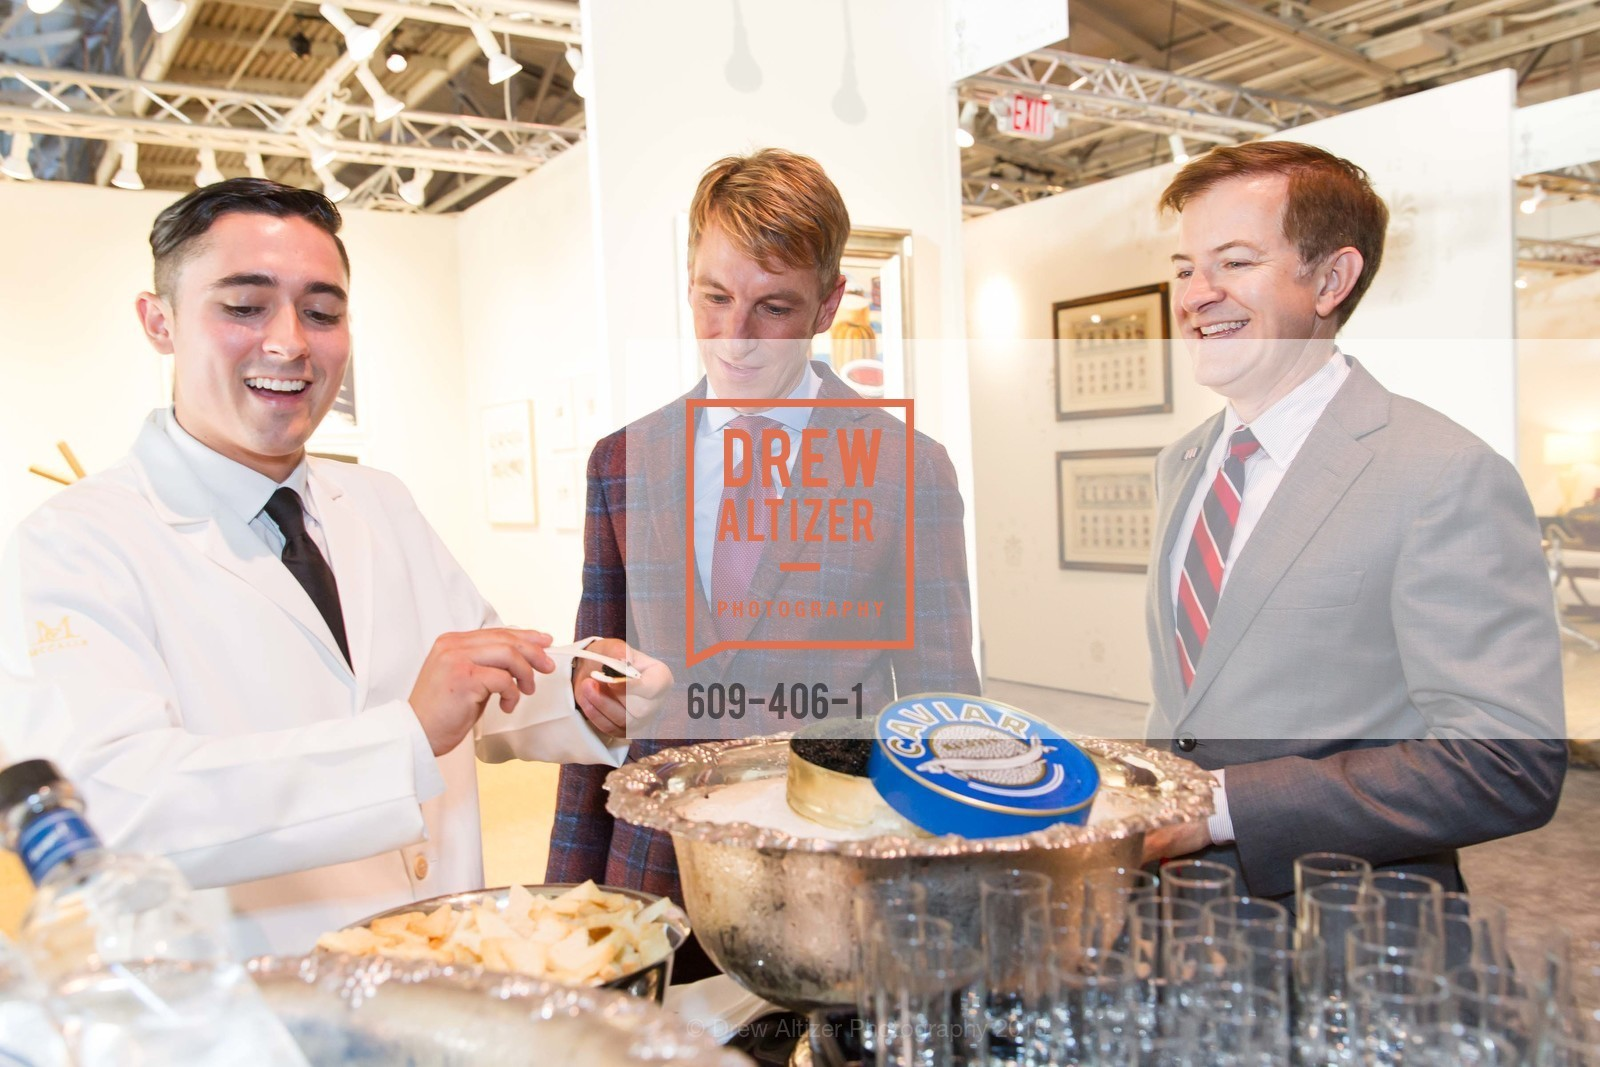 Jack Calhoun, Trent Norris, The San Francisco Fall Antiques Show, Festival Pavilion, Fort Mason, October 21st, 2015,Drew Altizer, Drew Altizer Photography, full-service agency, private events, San Francisco photographer, photographer california